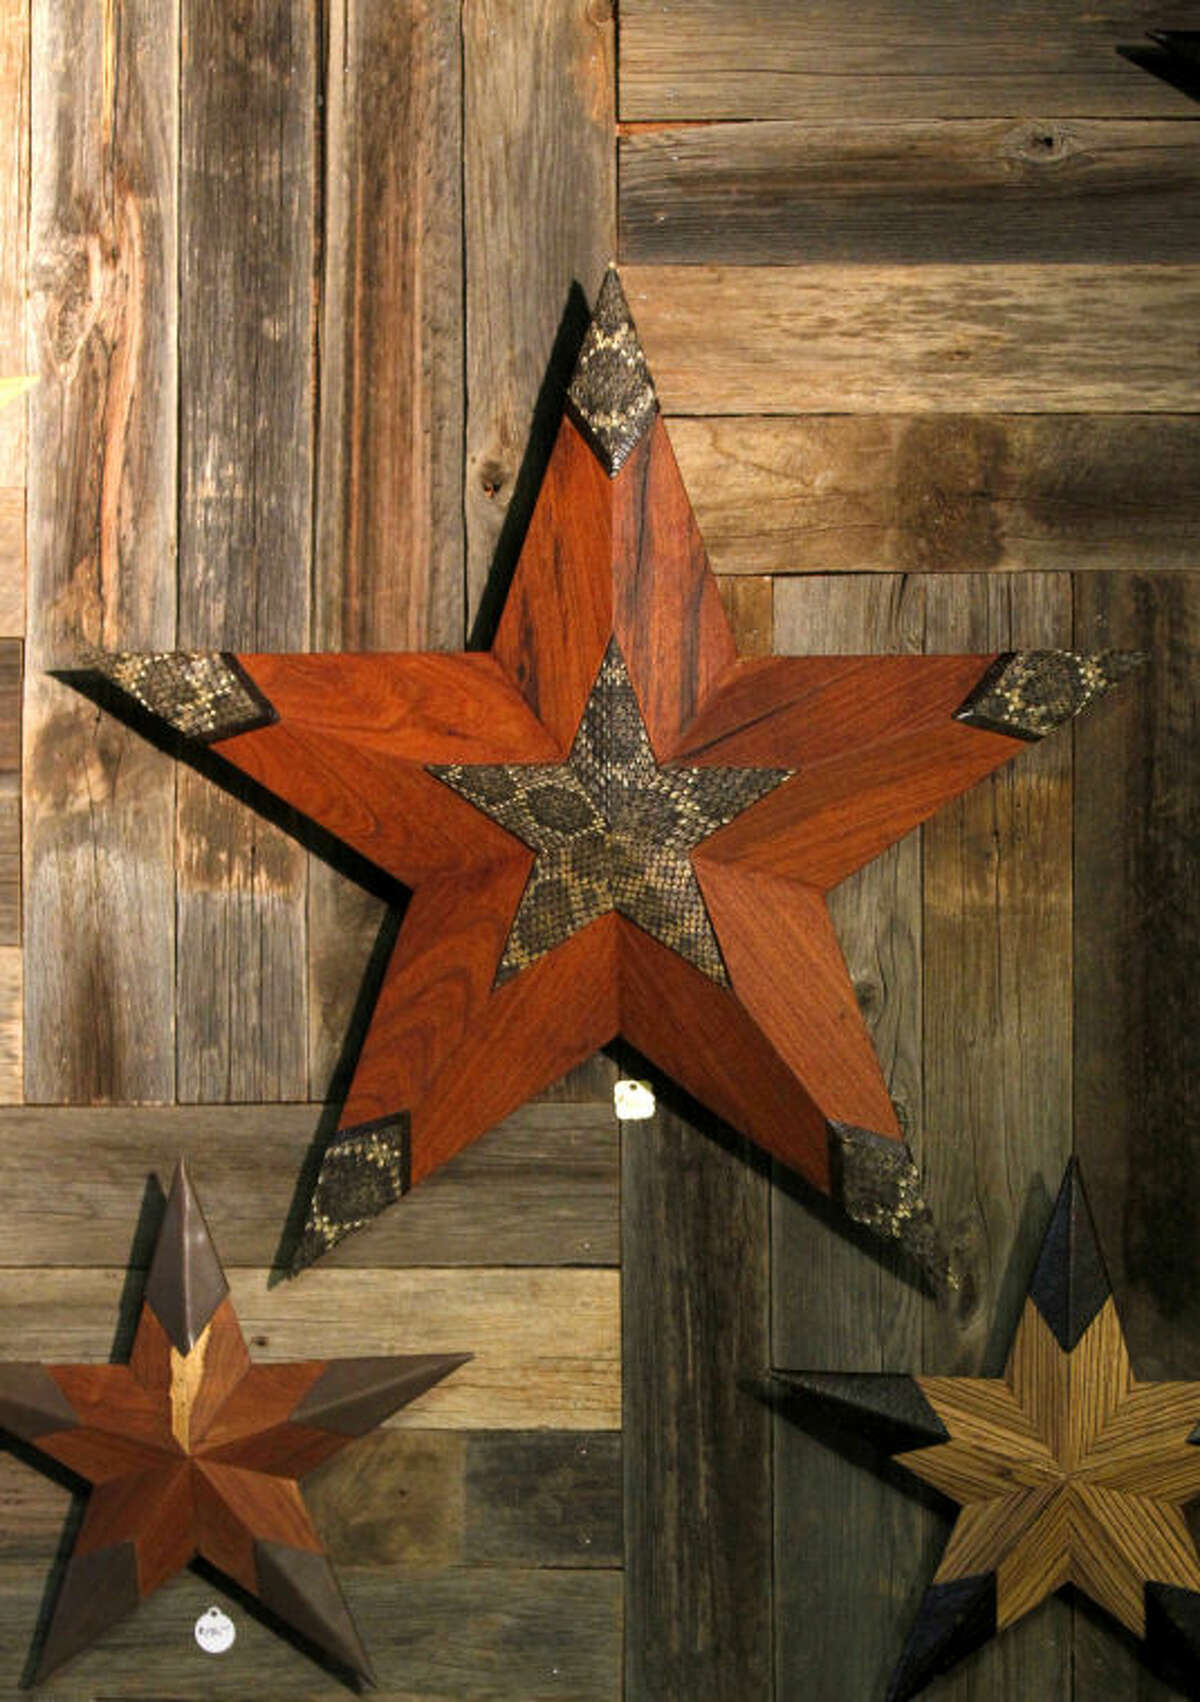 Stars handcrafted from wood and metal by local artist Steve Culver hang on display during an event featuring art by the artist as well as a Manuscript wine tasting on Saturday. James Durbin/Reporter-Telegram